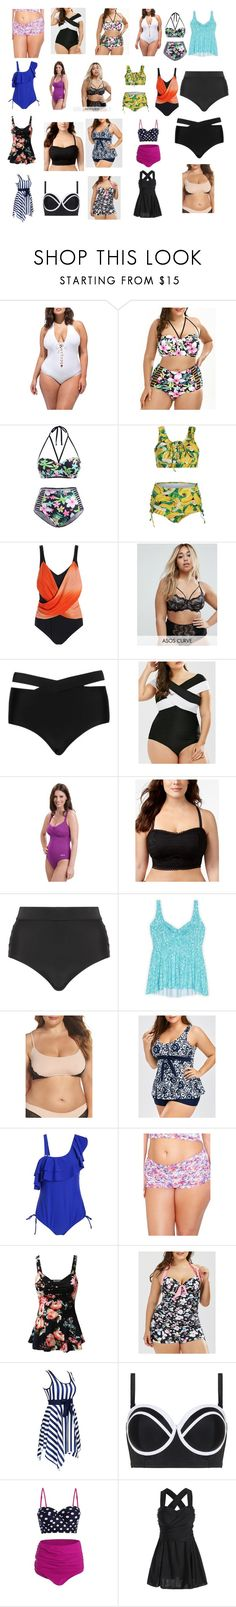 """""""a bevy of bathing beauties"""" by cassandra-beauchamp on Polyvore featuring Ashley Graham, ASOS Curve, Cactus, Dolfin, Becca Etc., Lands' End, Only Hearts, Doublju and plus size clothing"""